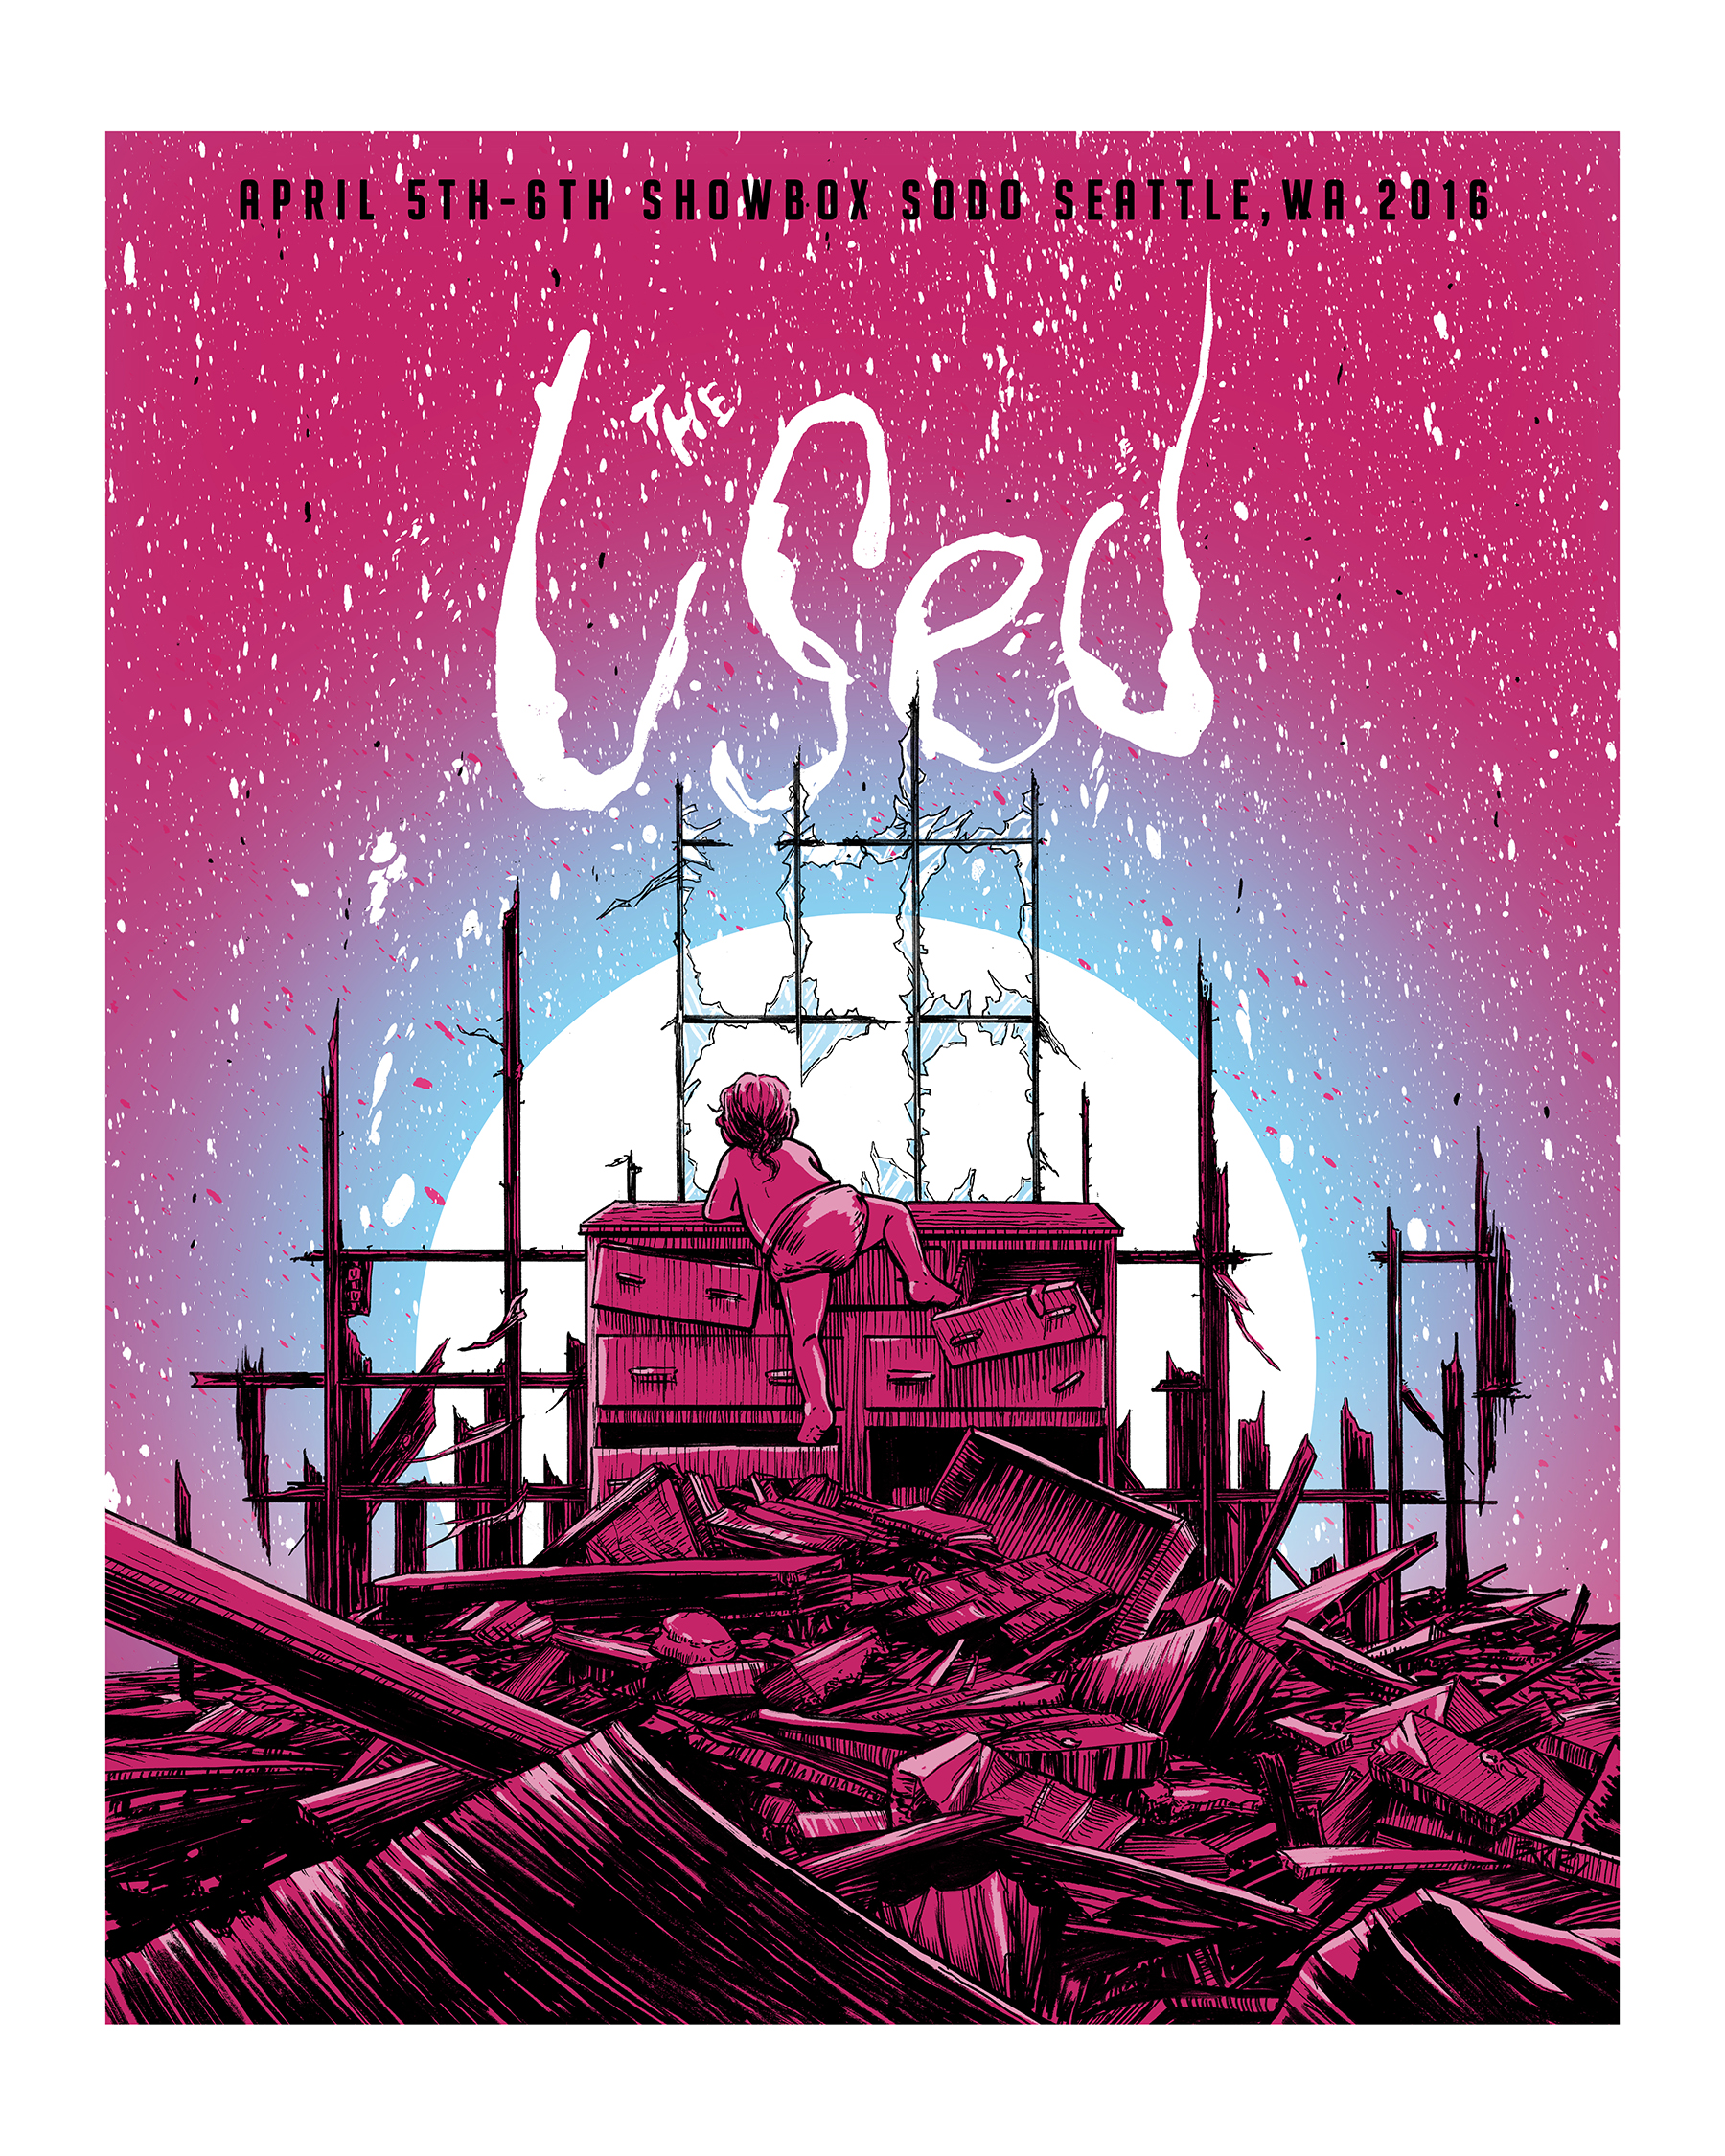 16x20_theused.jpg